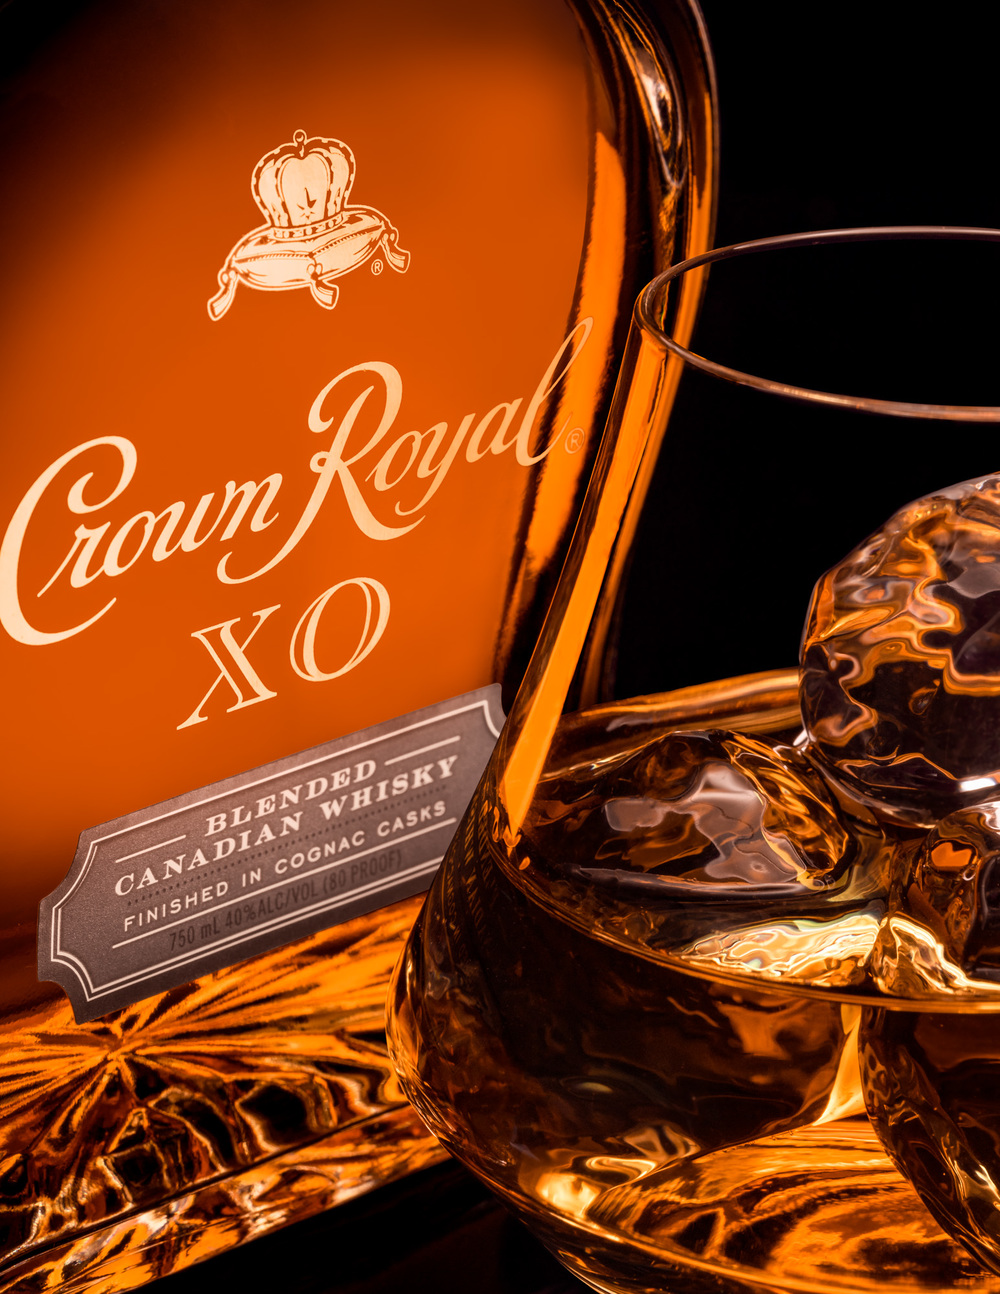 Crown Royal XO Cocktail